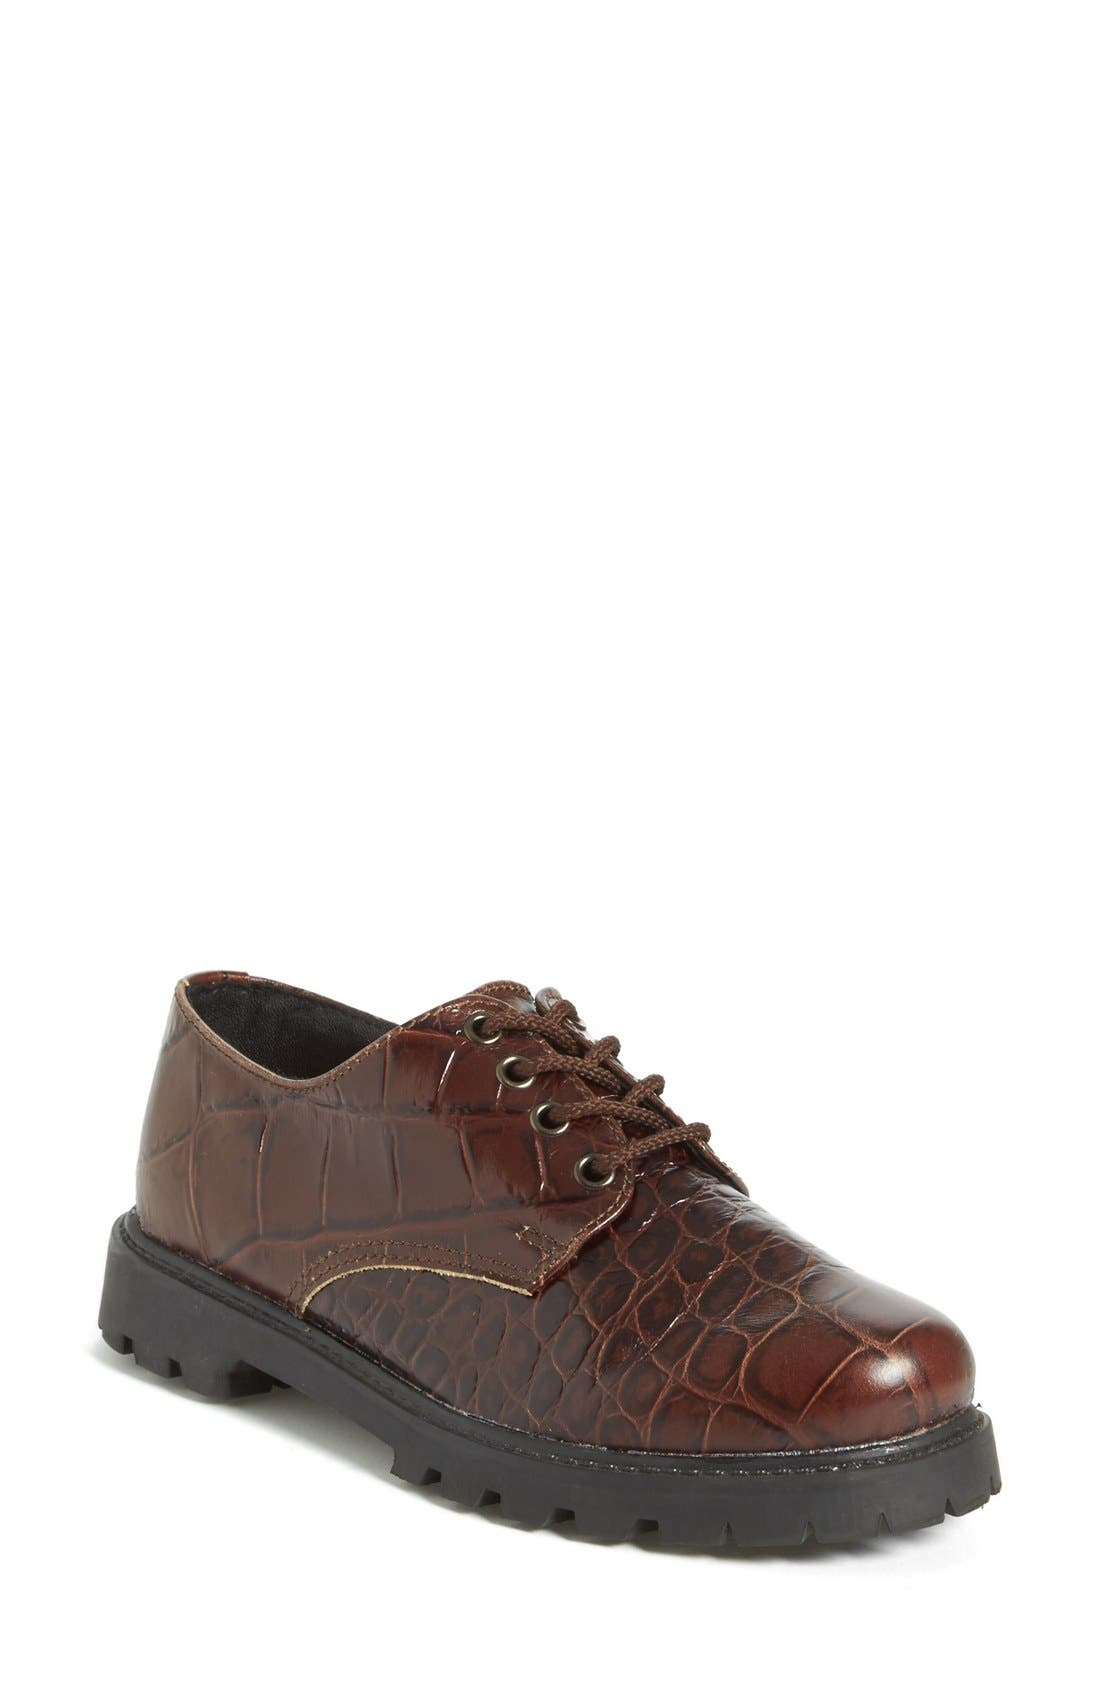 Alternate Image 1 Selected - Brother Vellies 'School Shoe' Lace-Up Oxford (Women)